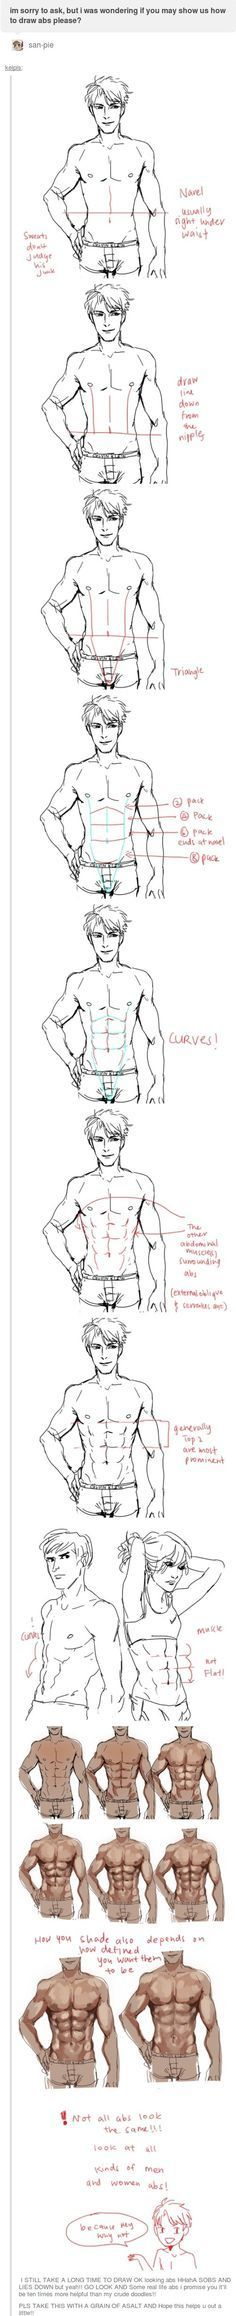 how to draw abs. kelpls.tumblr.com… I have needed this for so looooong